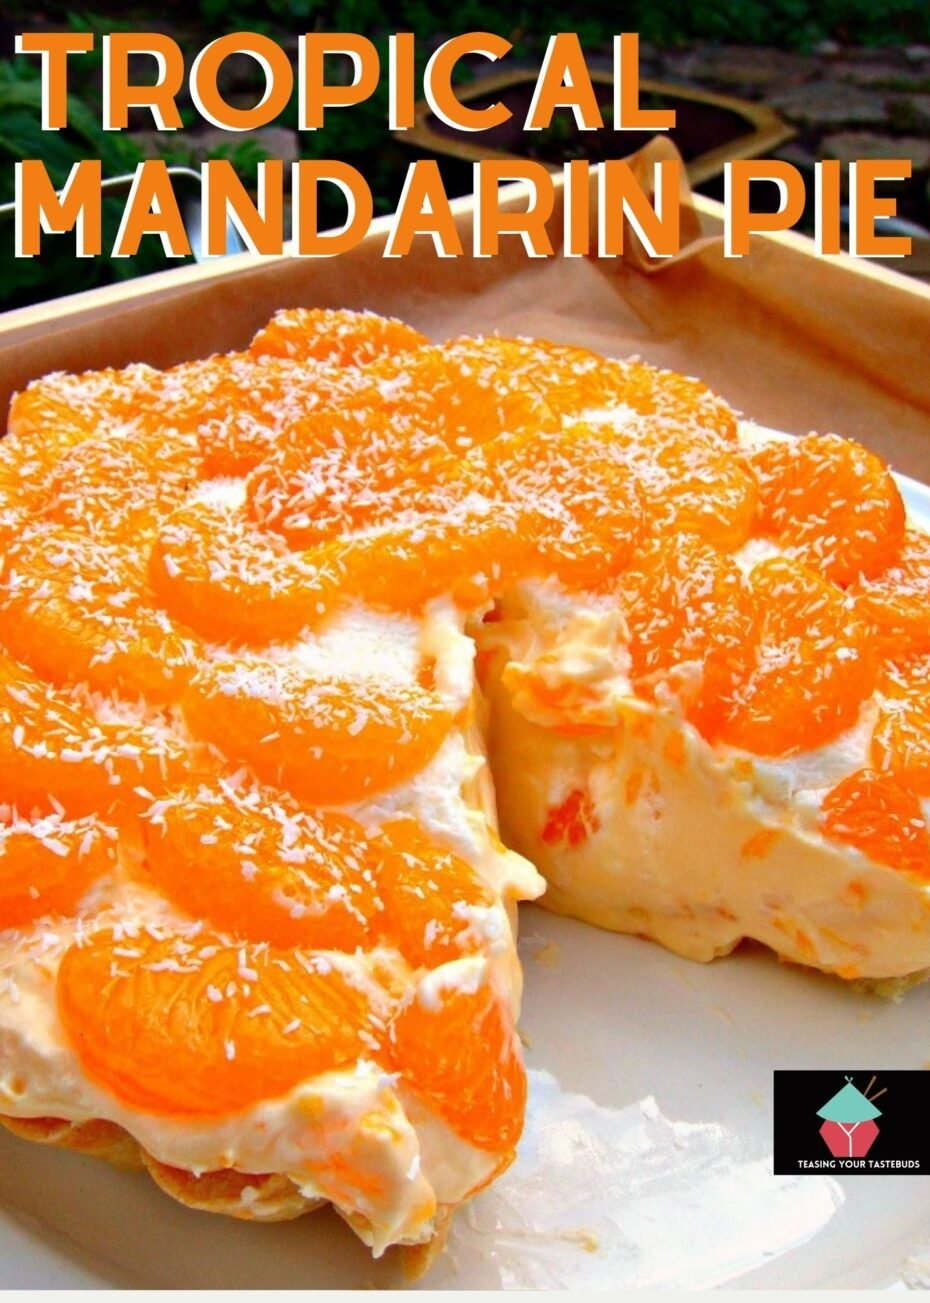 Homemade Tropical Mandarin Pie, made up of a crispy buttery pastry case, filled with delicious creamy coconut custard, and laced throughout with juicy mandarins.